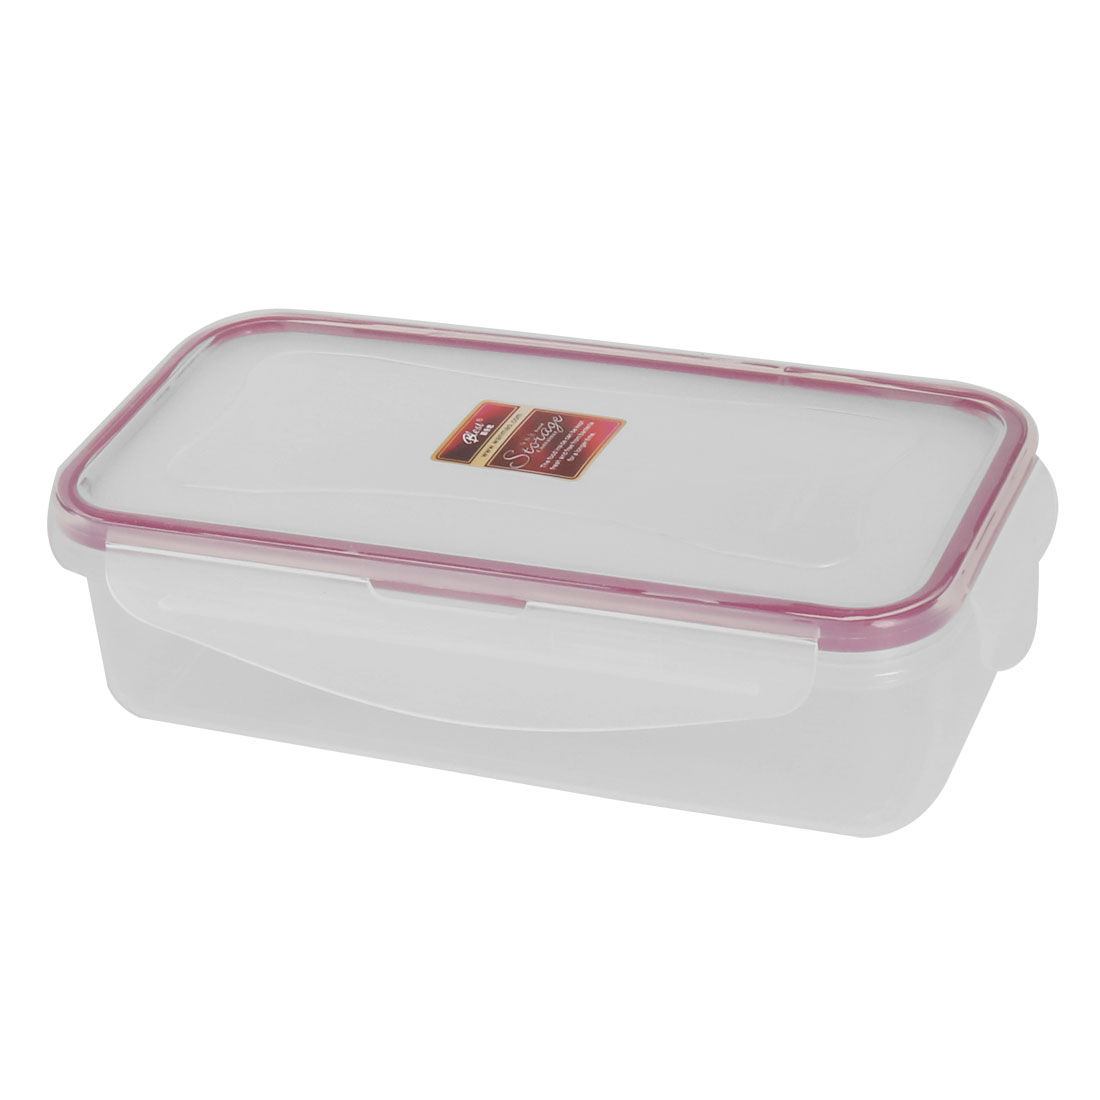 Household Kitchenware PP Rectangle Sealed Food Vegetable Fruit Storage Container 0.45L